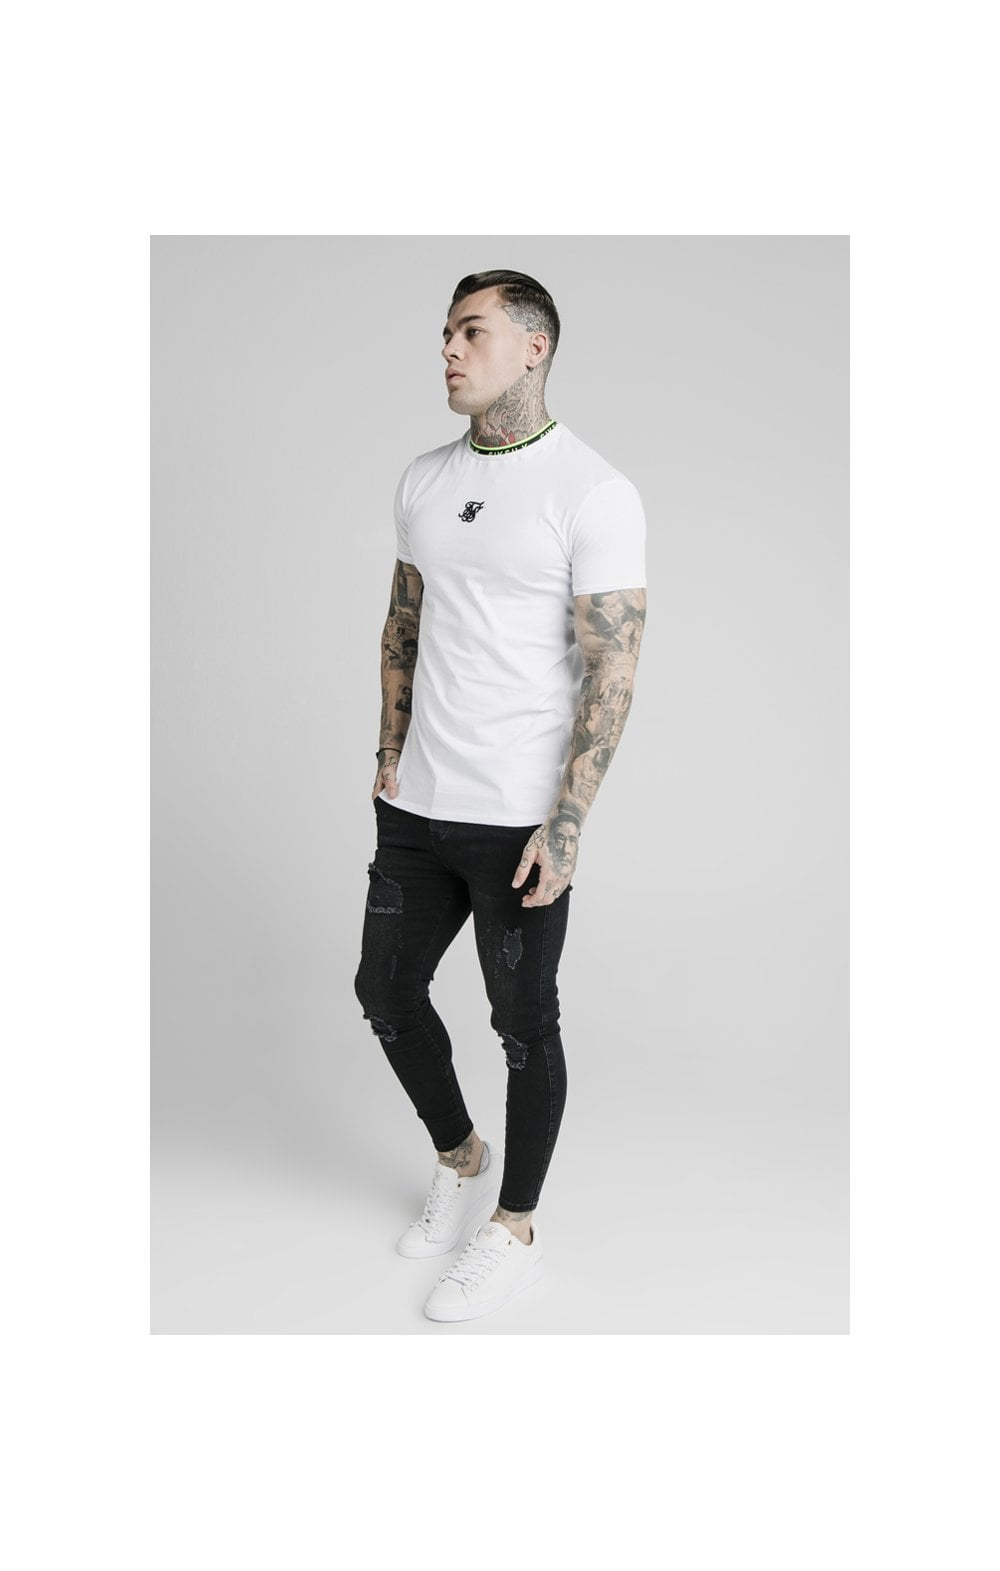 SikSilk Straight Hem Tape Collar Gym Tee - White (3)